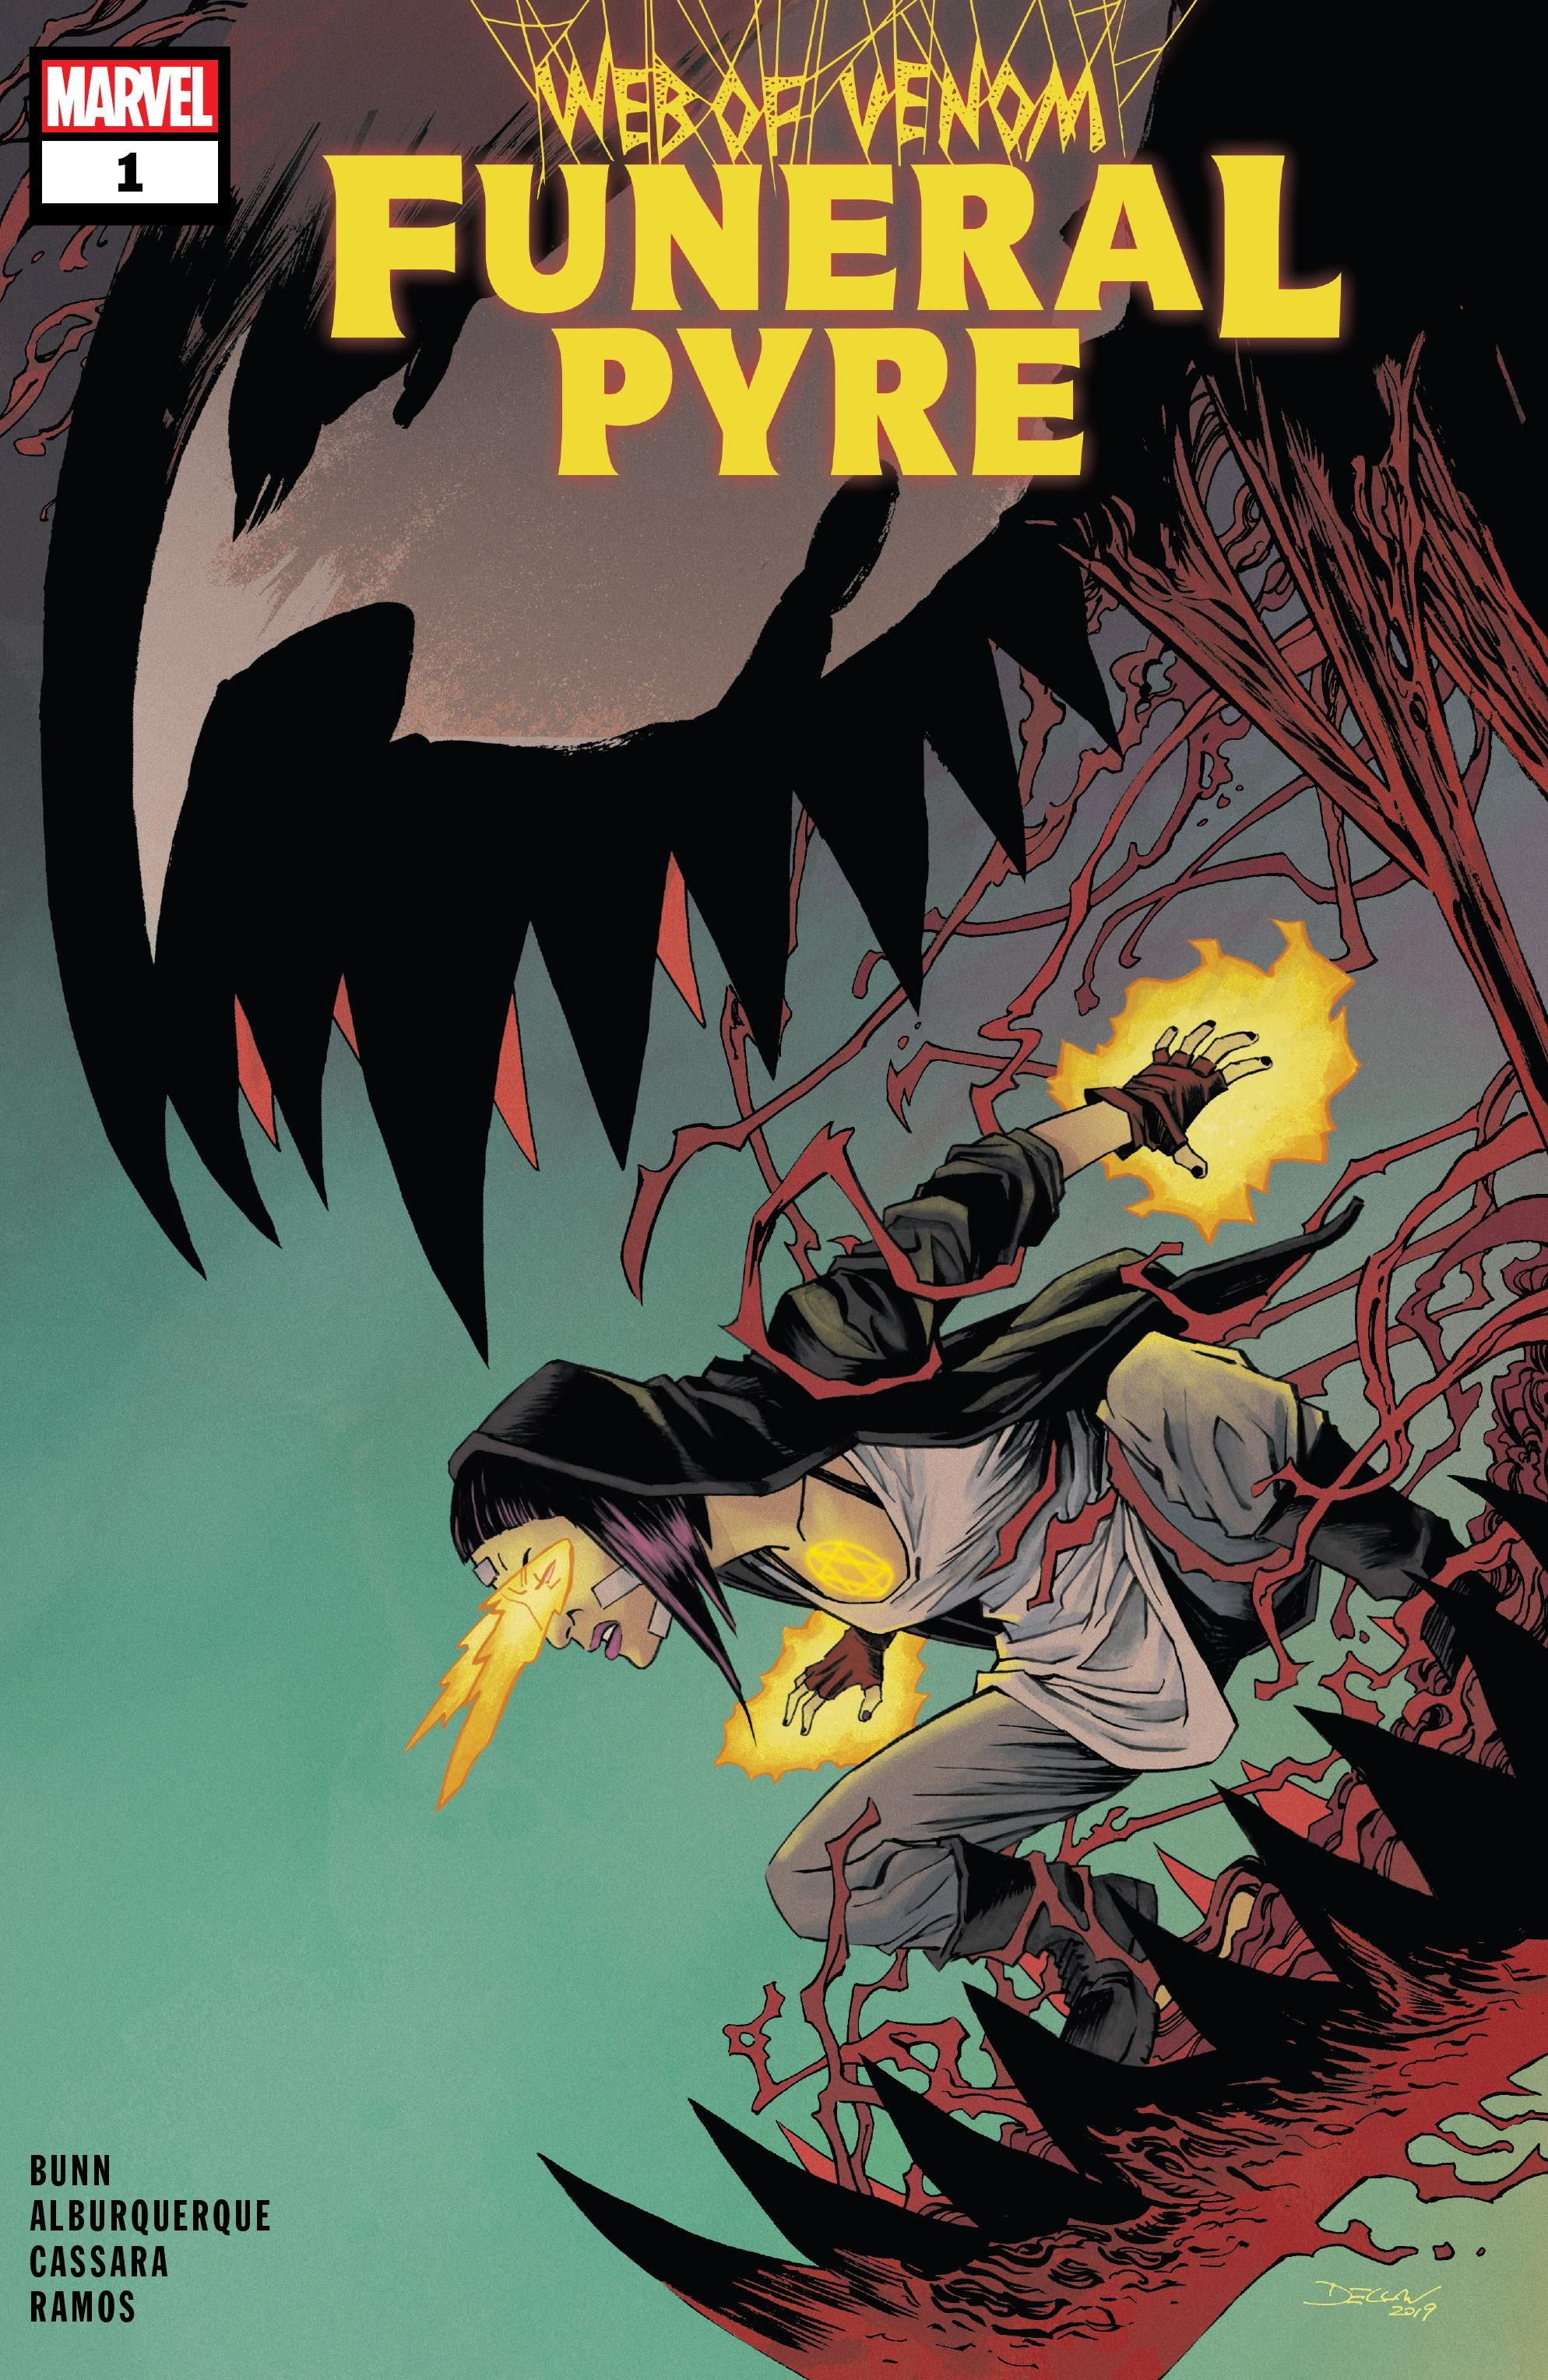 Web of Venom: Funeral Pyre Vol 1 1